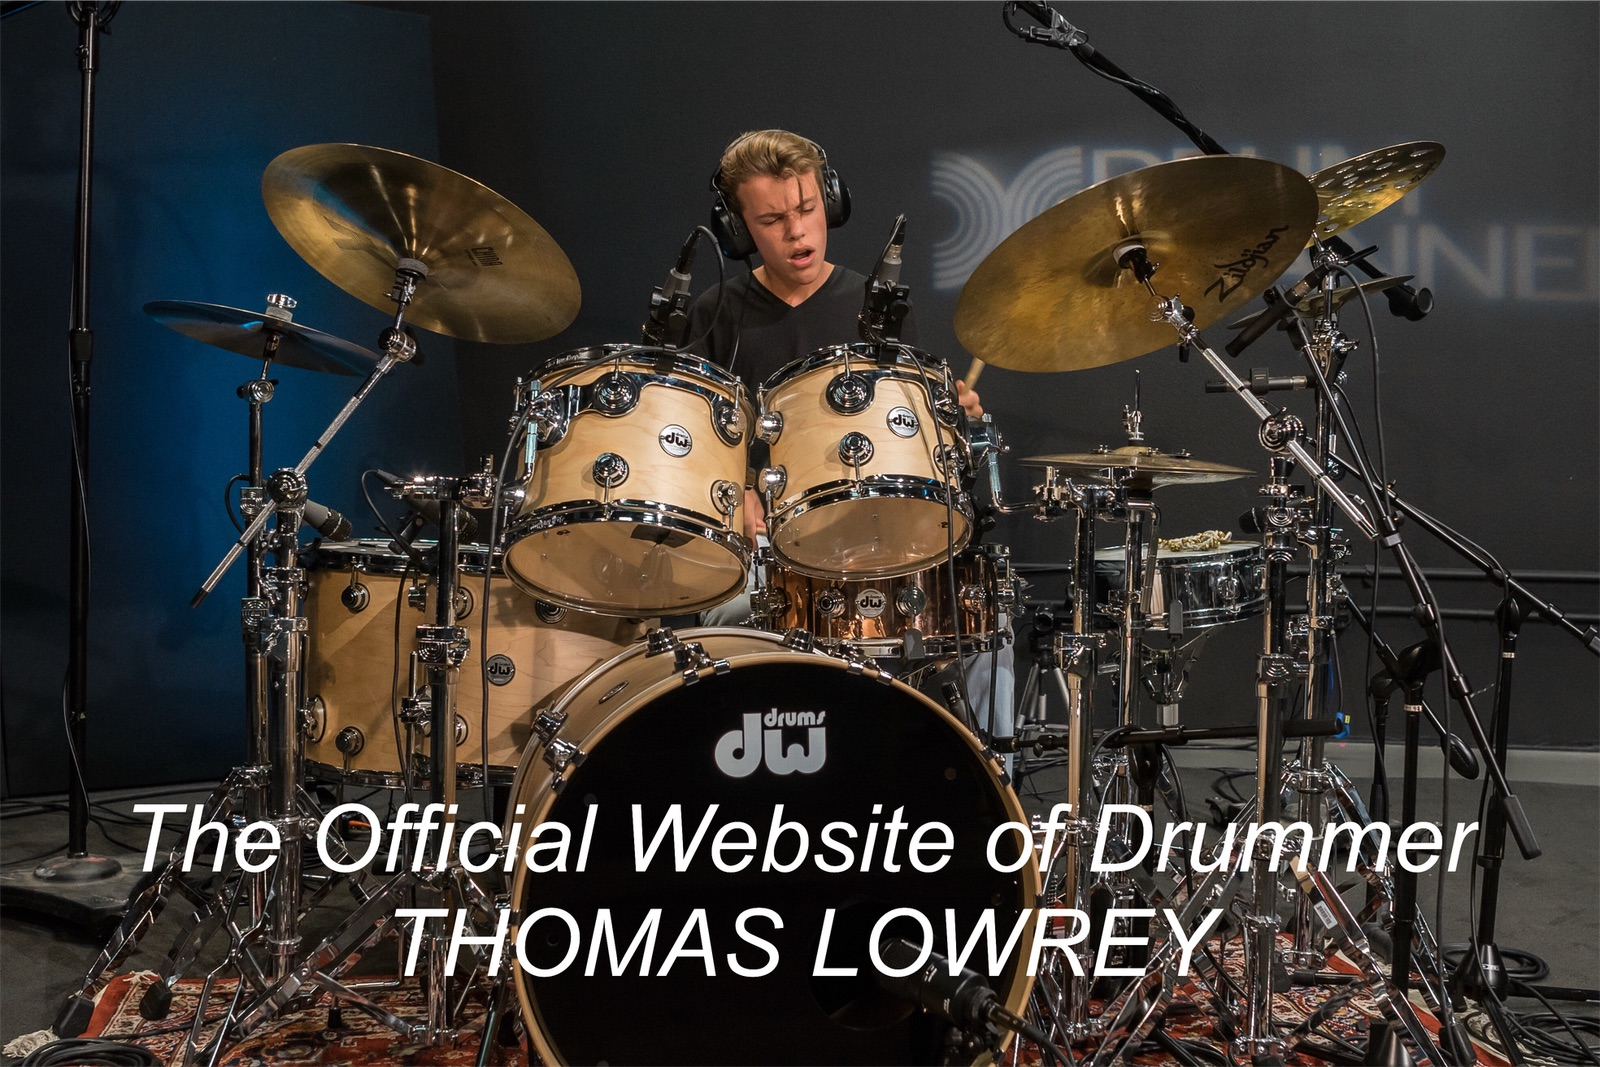 The Official Website of Drummer Thomas Lowrey